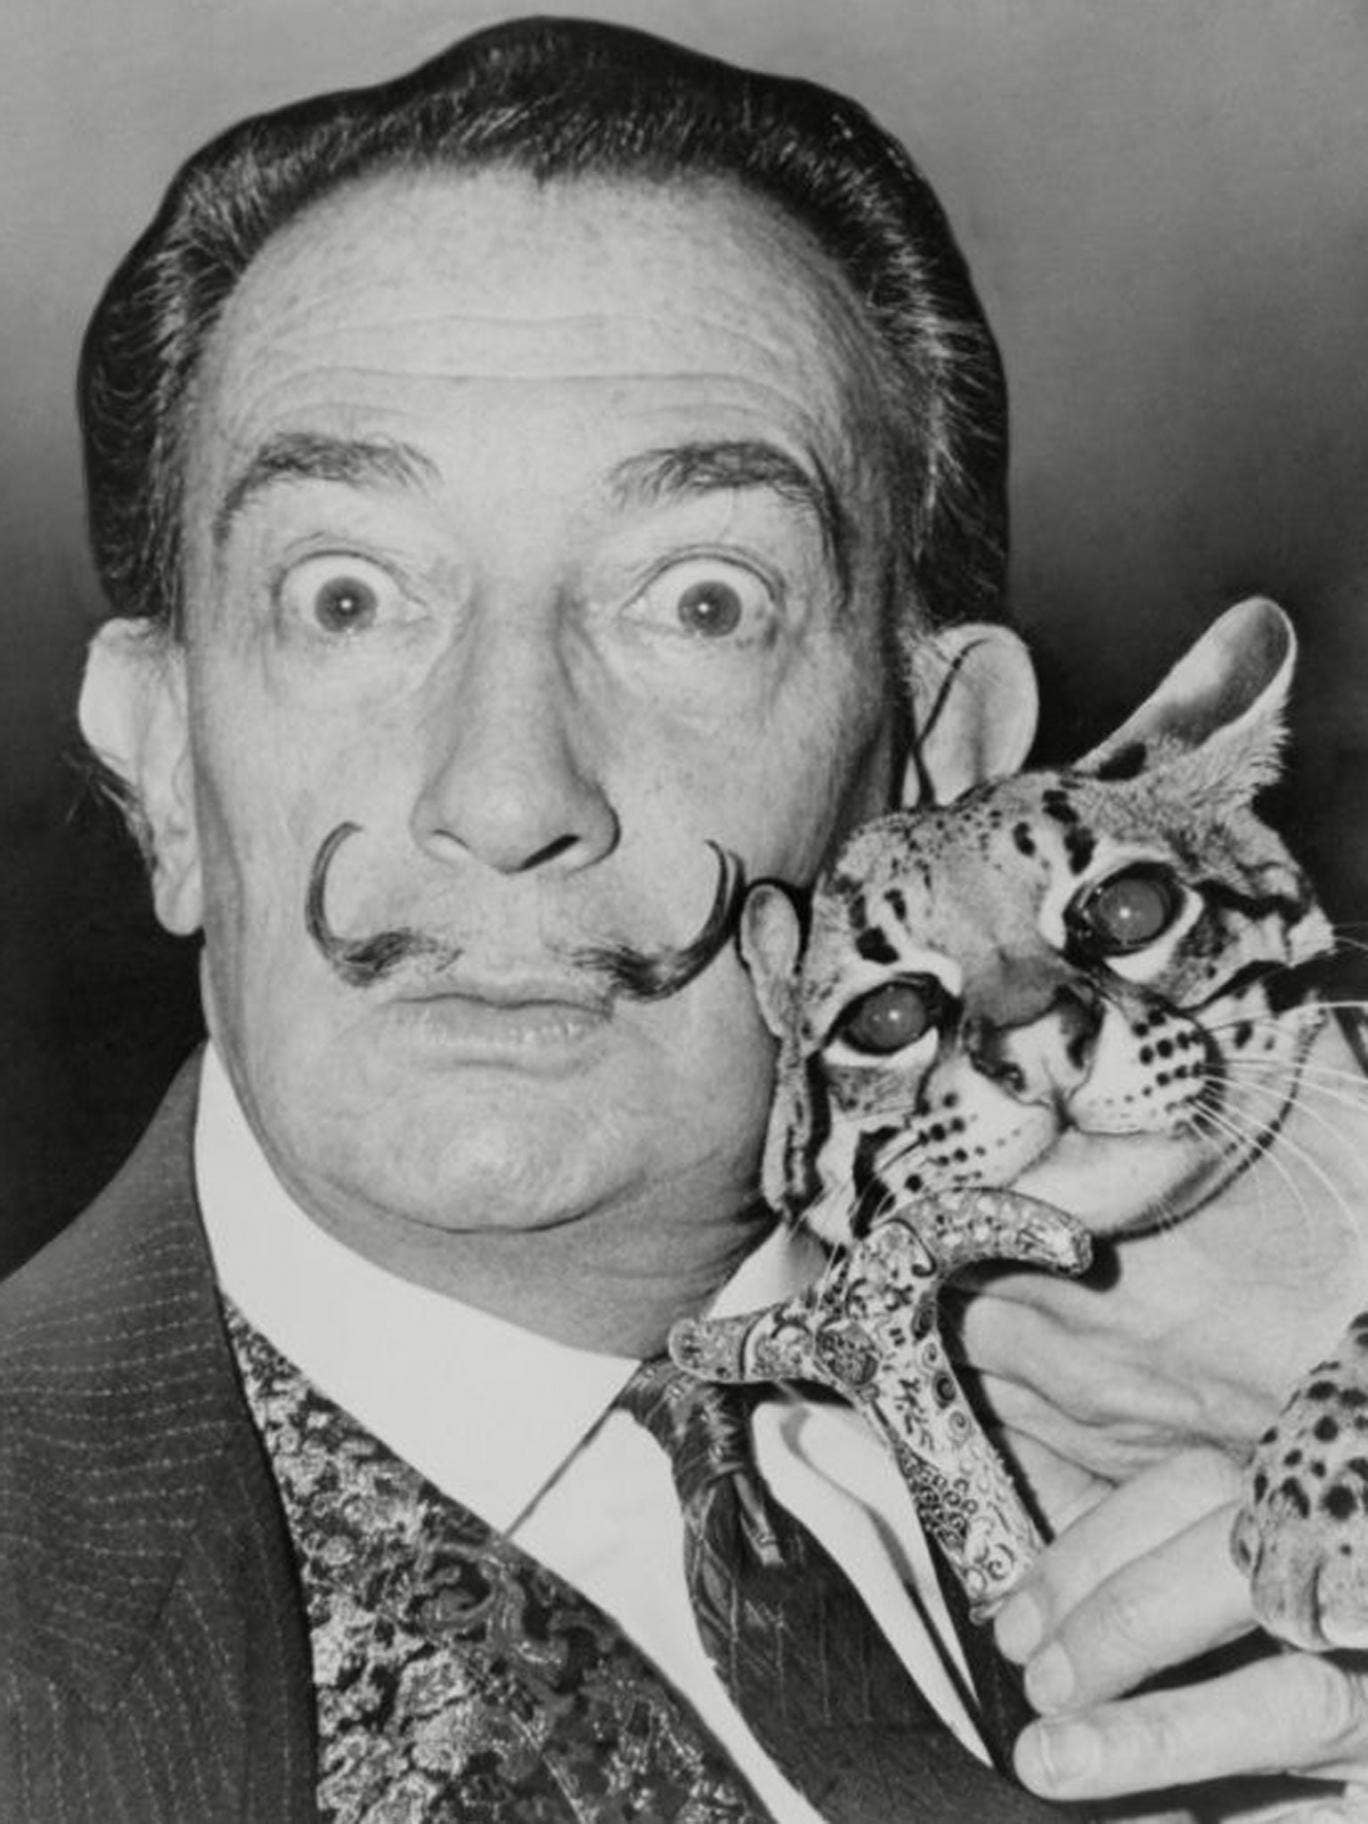 The Salvador Dalí retrospective at the Pompidou Centre in Paris has now become the most popular exhibition in the Centre's history